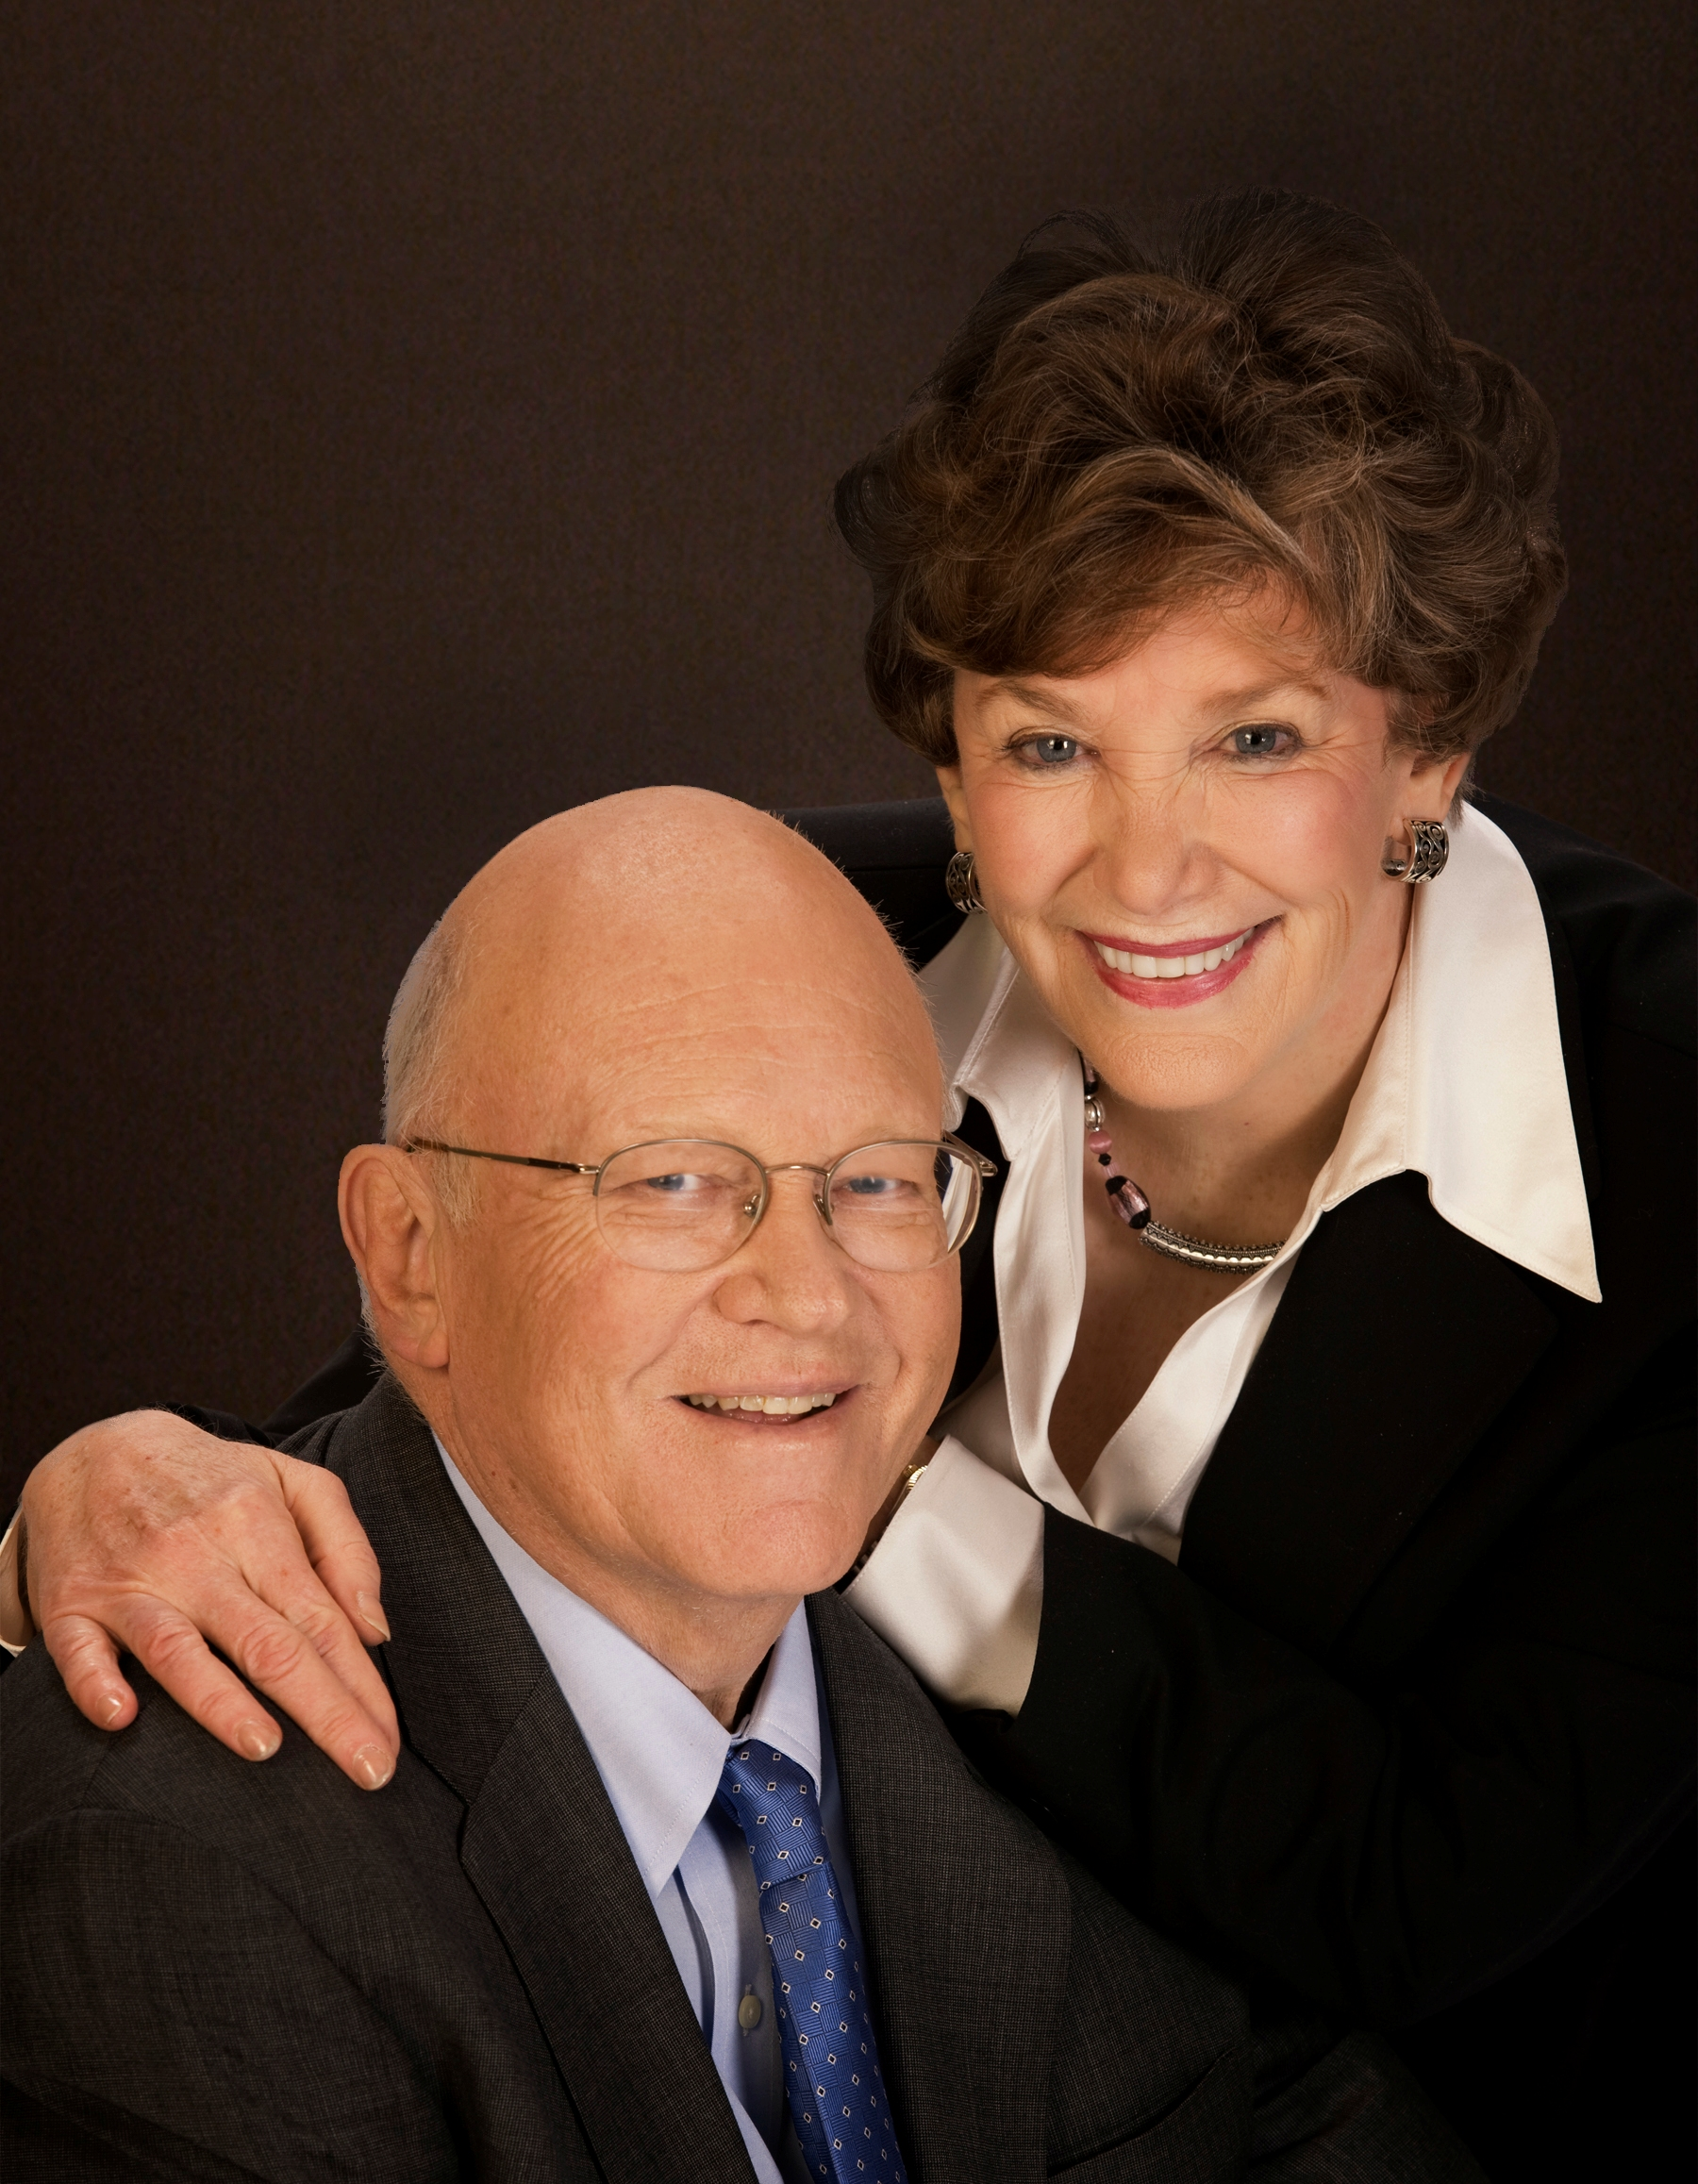 Ken and Margie Blanchard